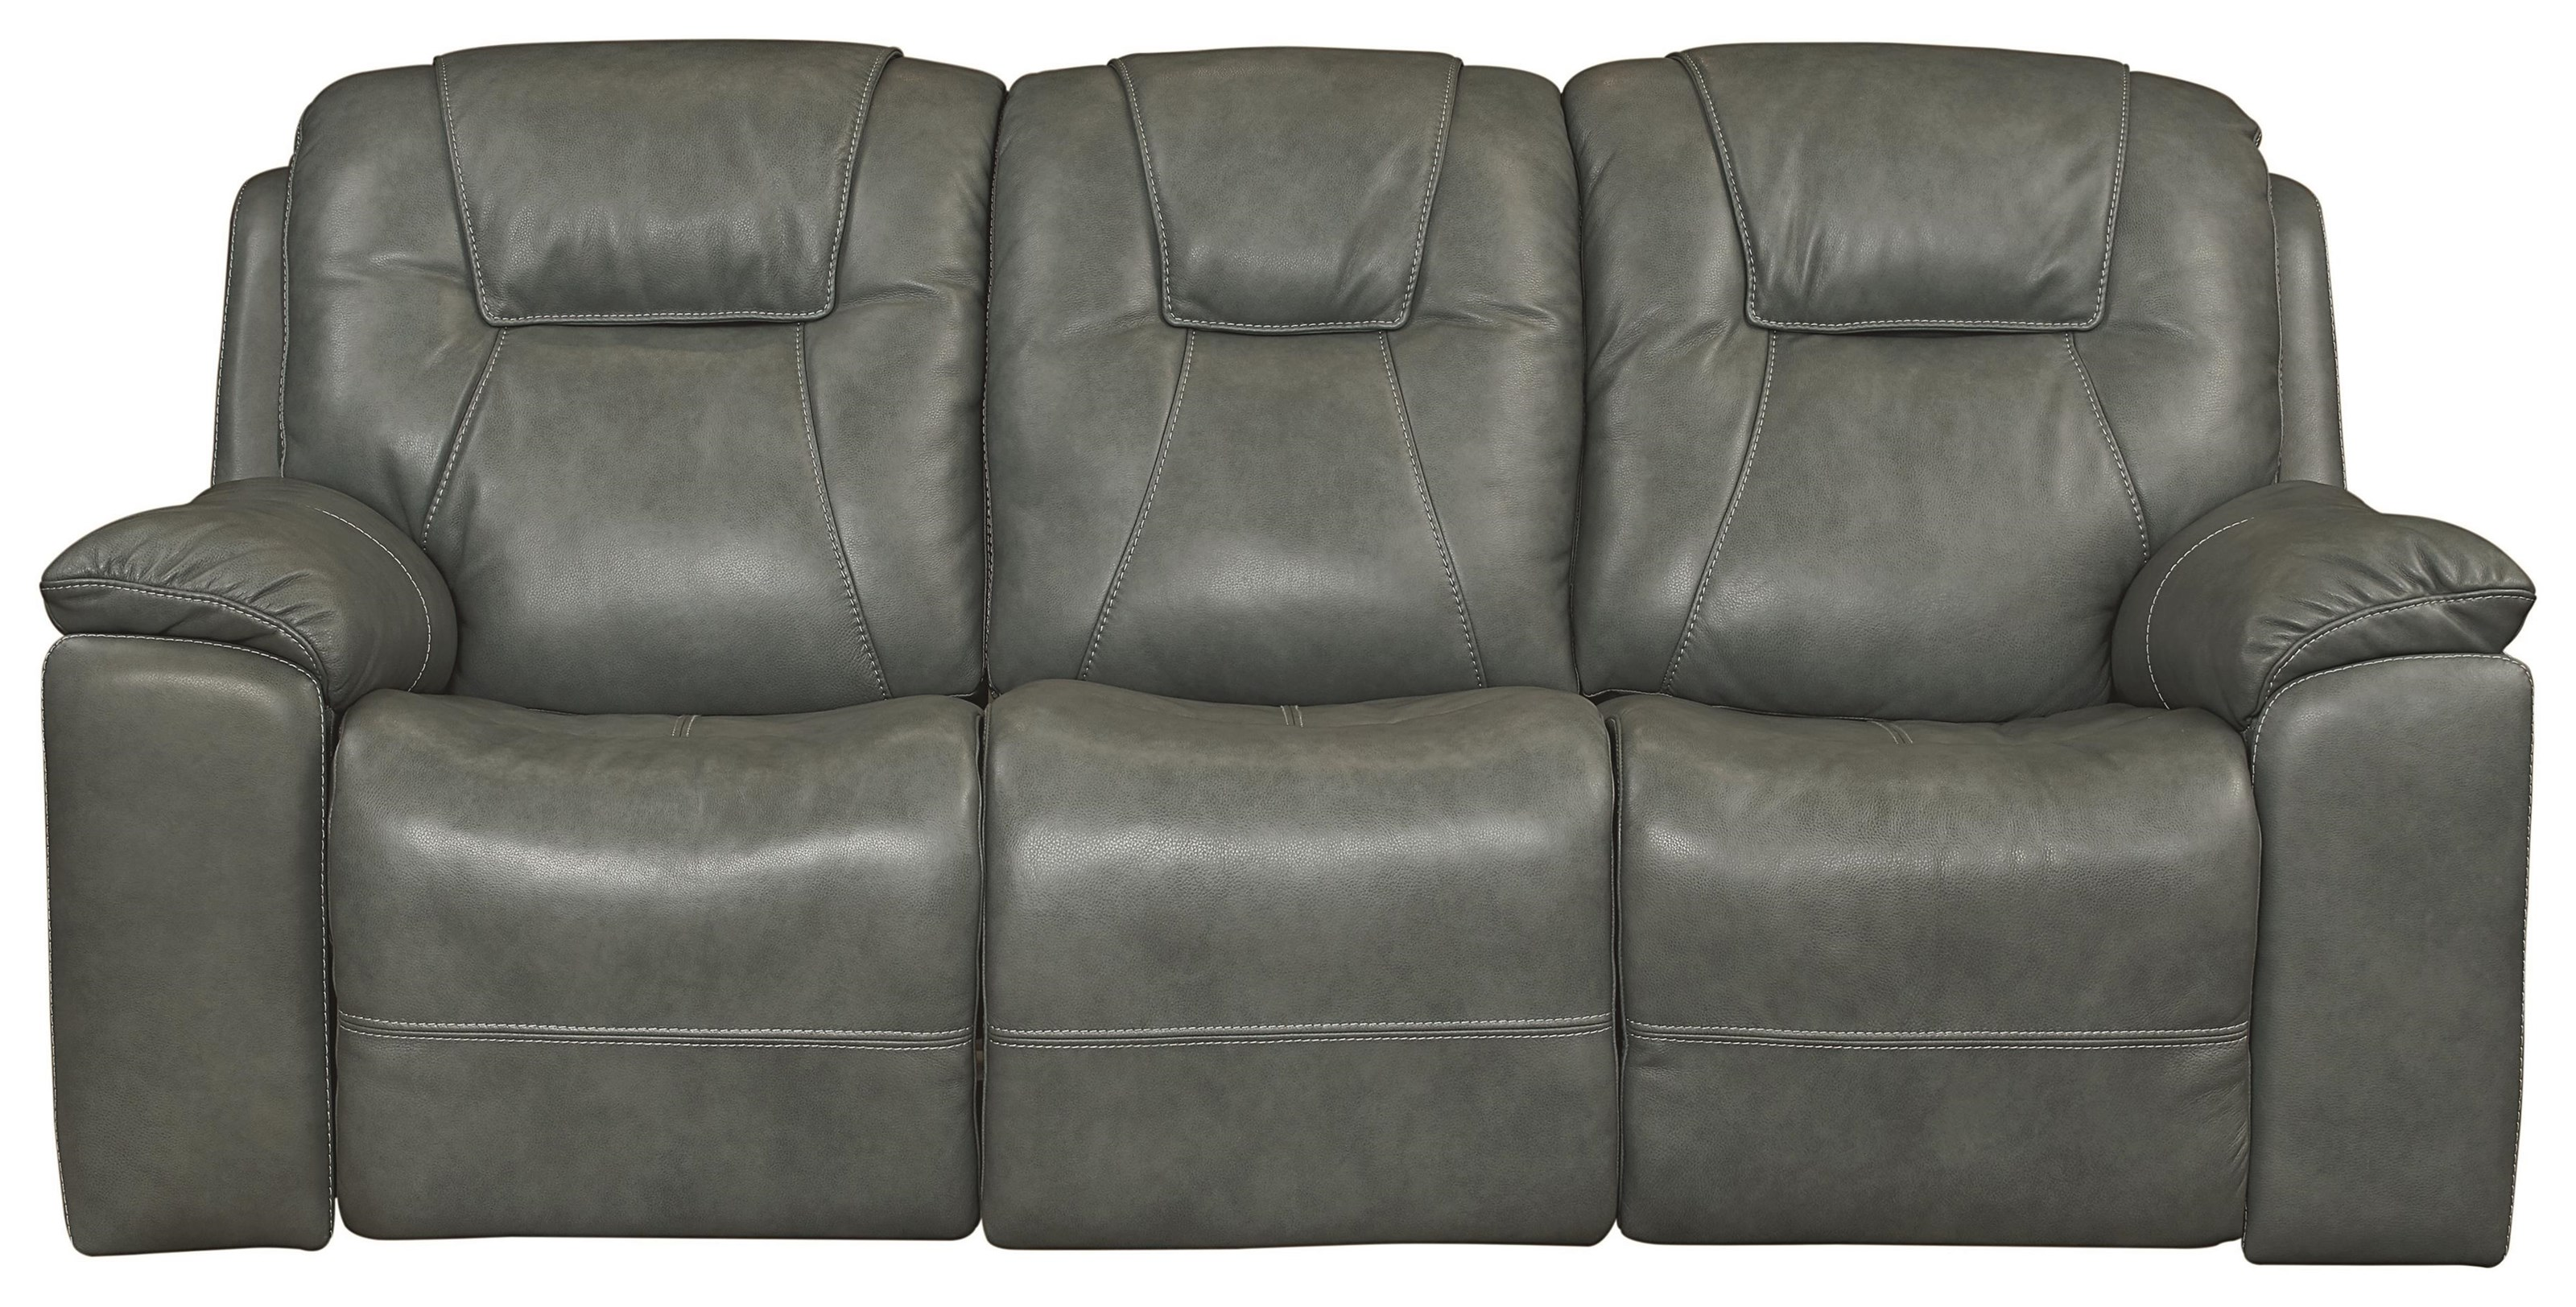 Club Level - Chandler Reclining Sofa by Bassett at Johnny Janosik